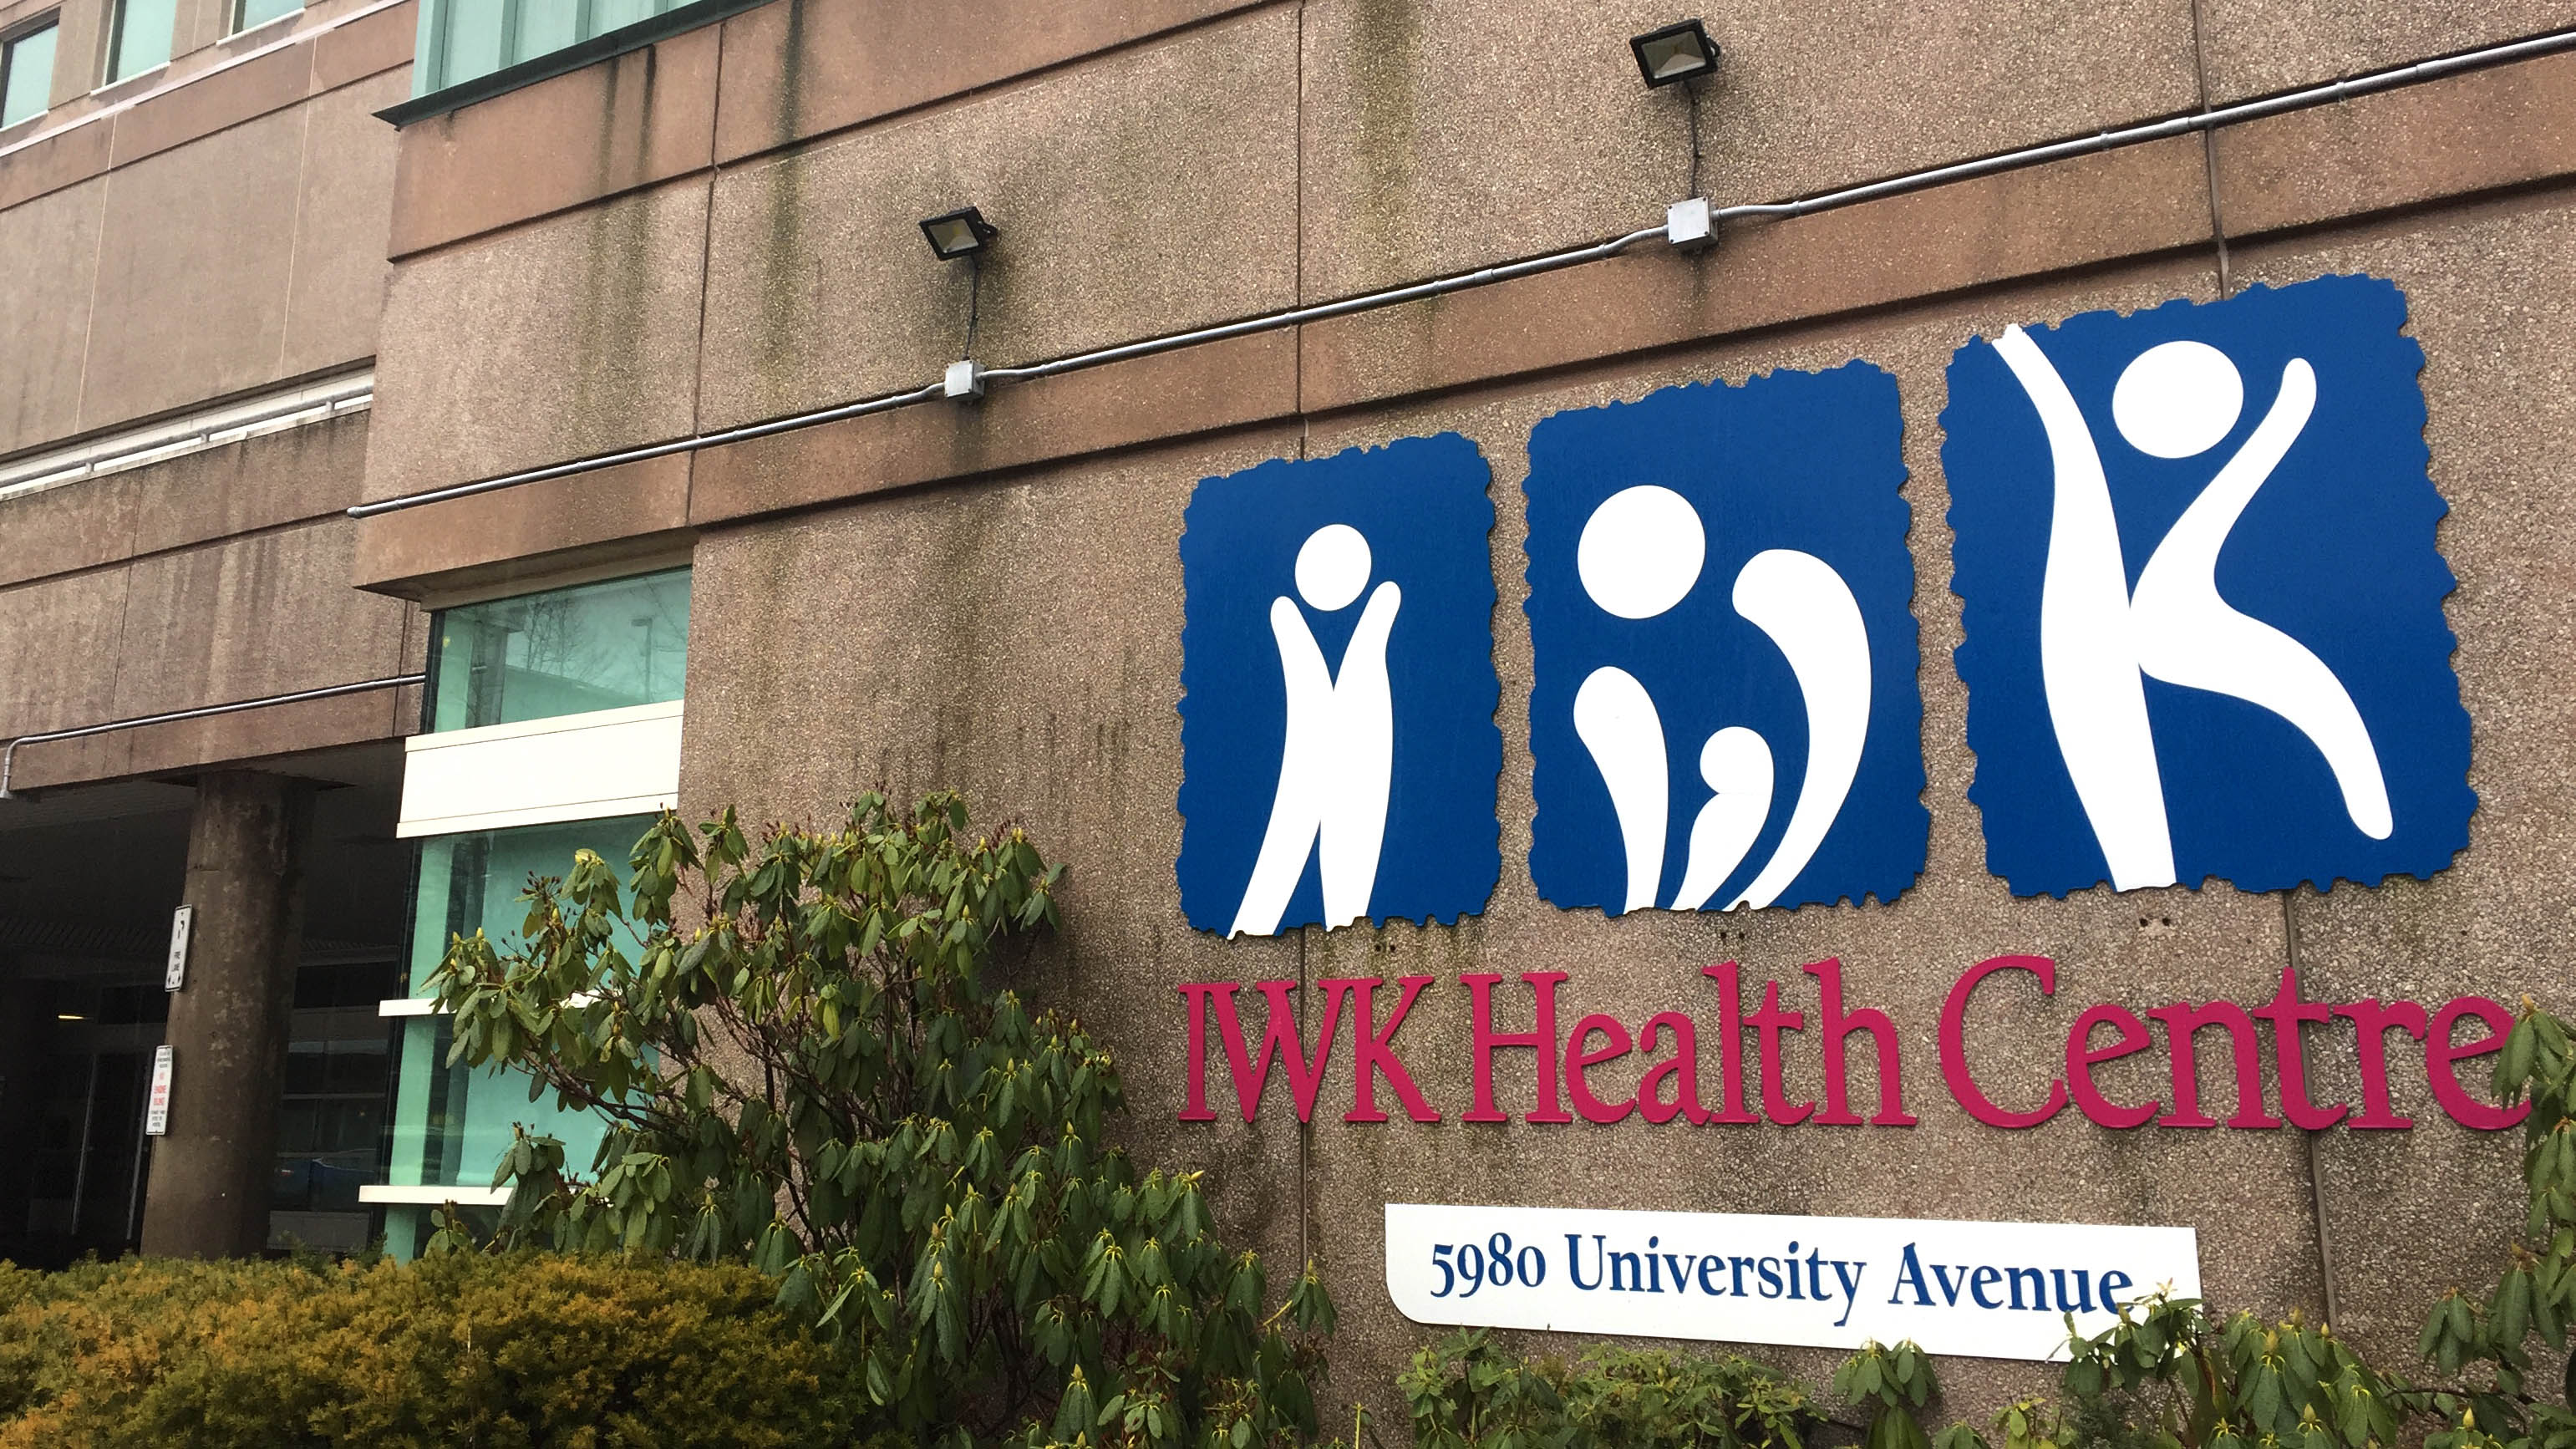 The IWK Health Centre's reputation was marred almost two years ago by a financial scandal.